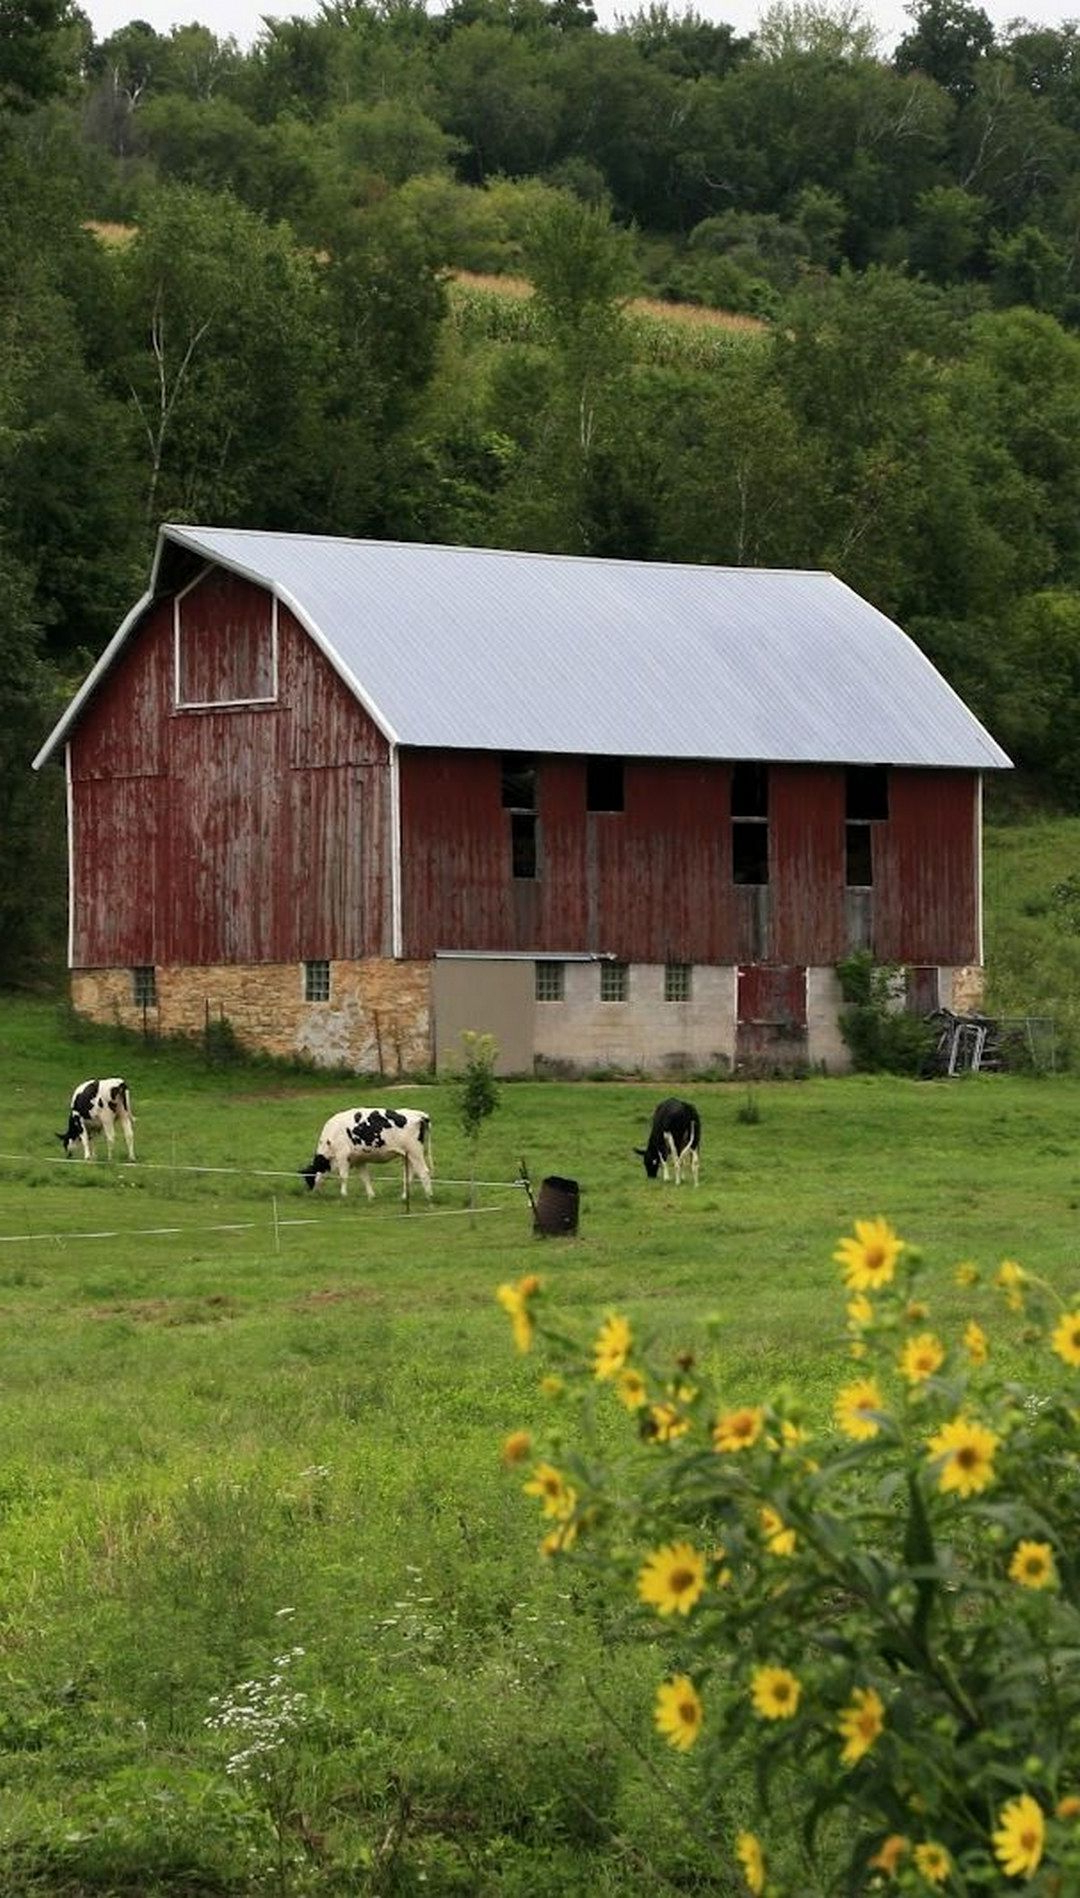 141 Amazing Old Bams And Farms Photos Country Barns Old